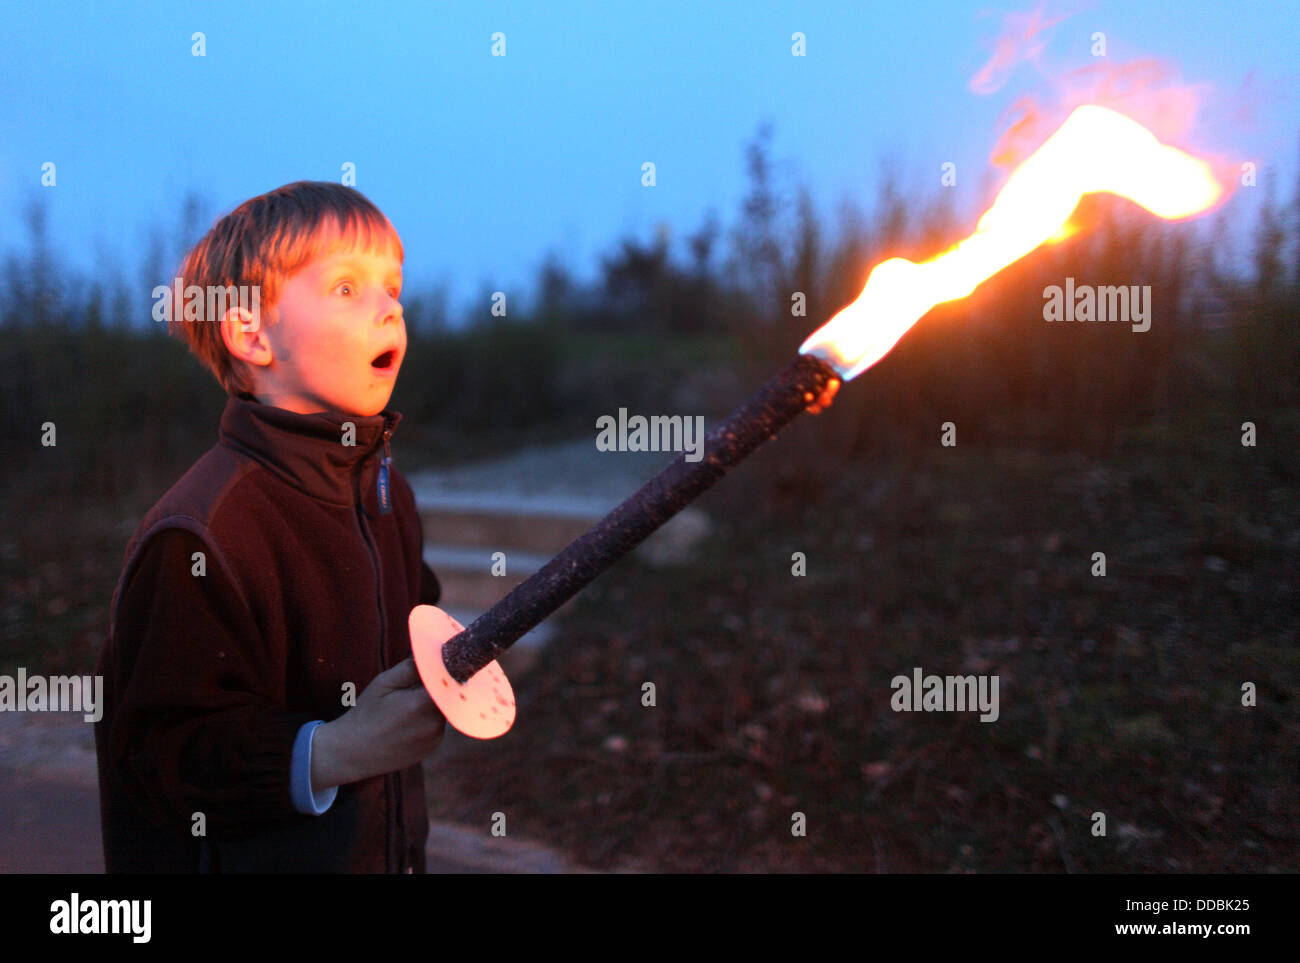 Waren, Germany, the boy looks astonished on a torch - Stock Image